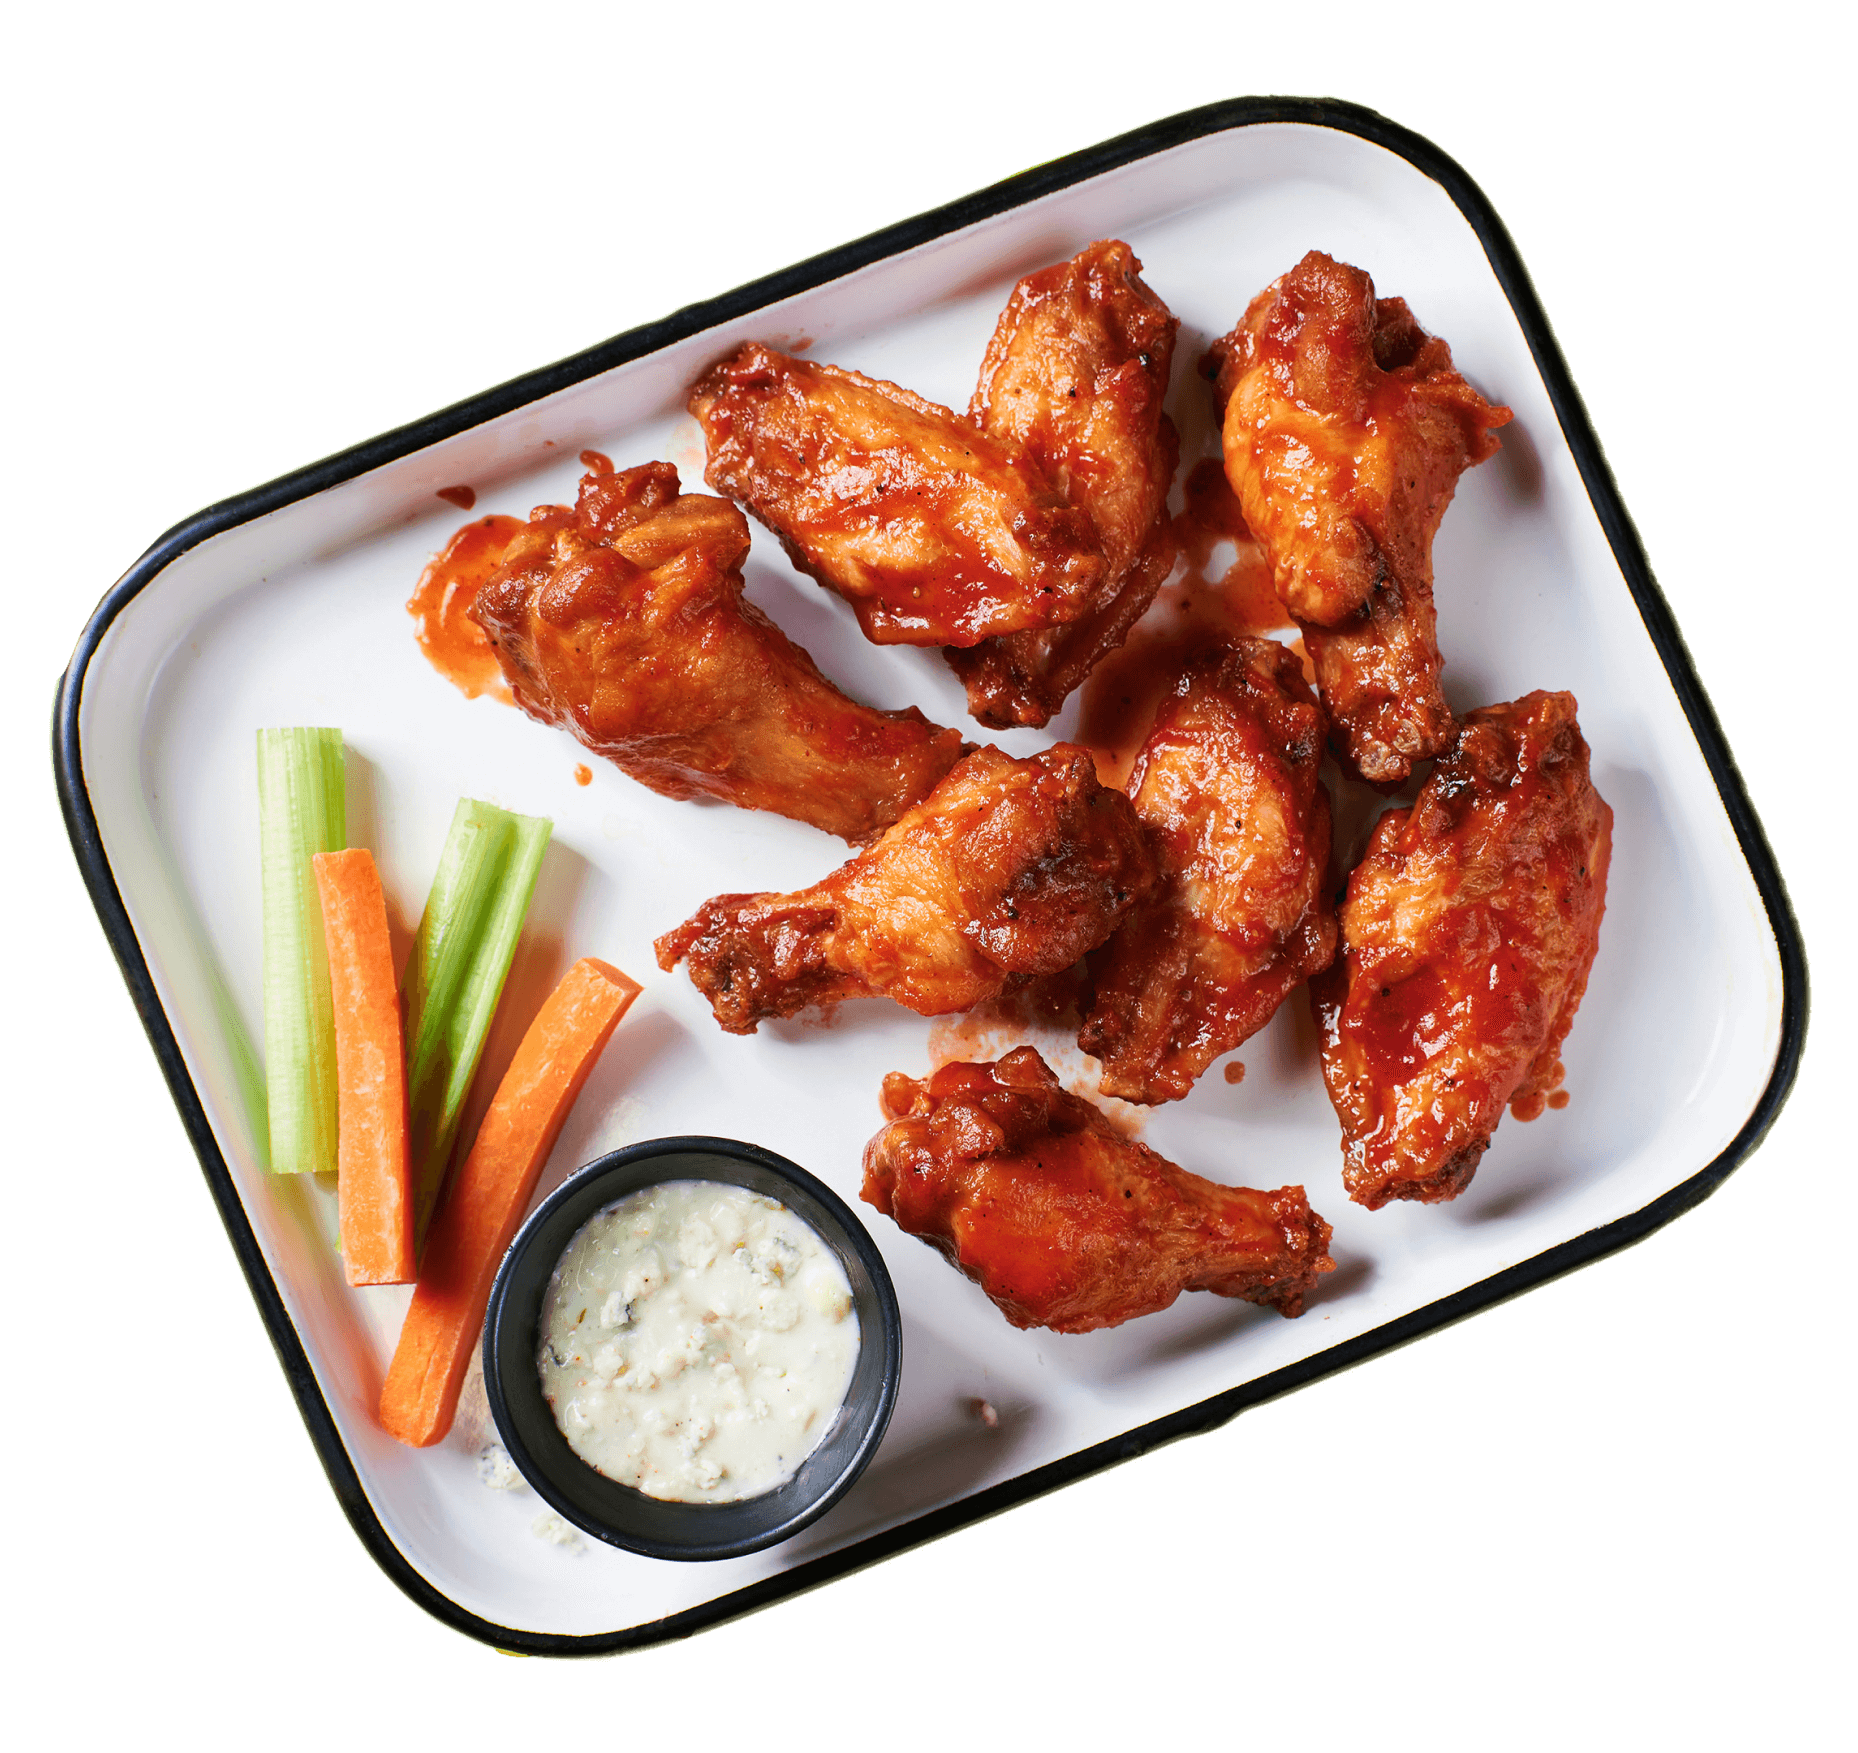 EVEN BIGGER BLAZIER BUFFALO WINGS - A hefty portion (15 count) of our spicy, juicy, meaty, tender and saucy buffalo wings, served with your choice of ranch or blue cheese, and crunchy celery and carrots for dipping --- by HotBox by Wiz Khalifa